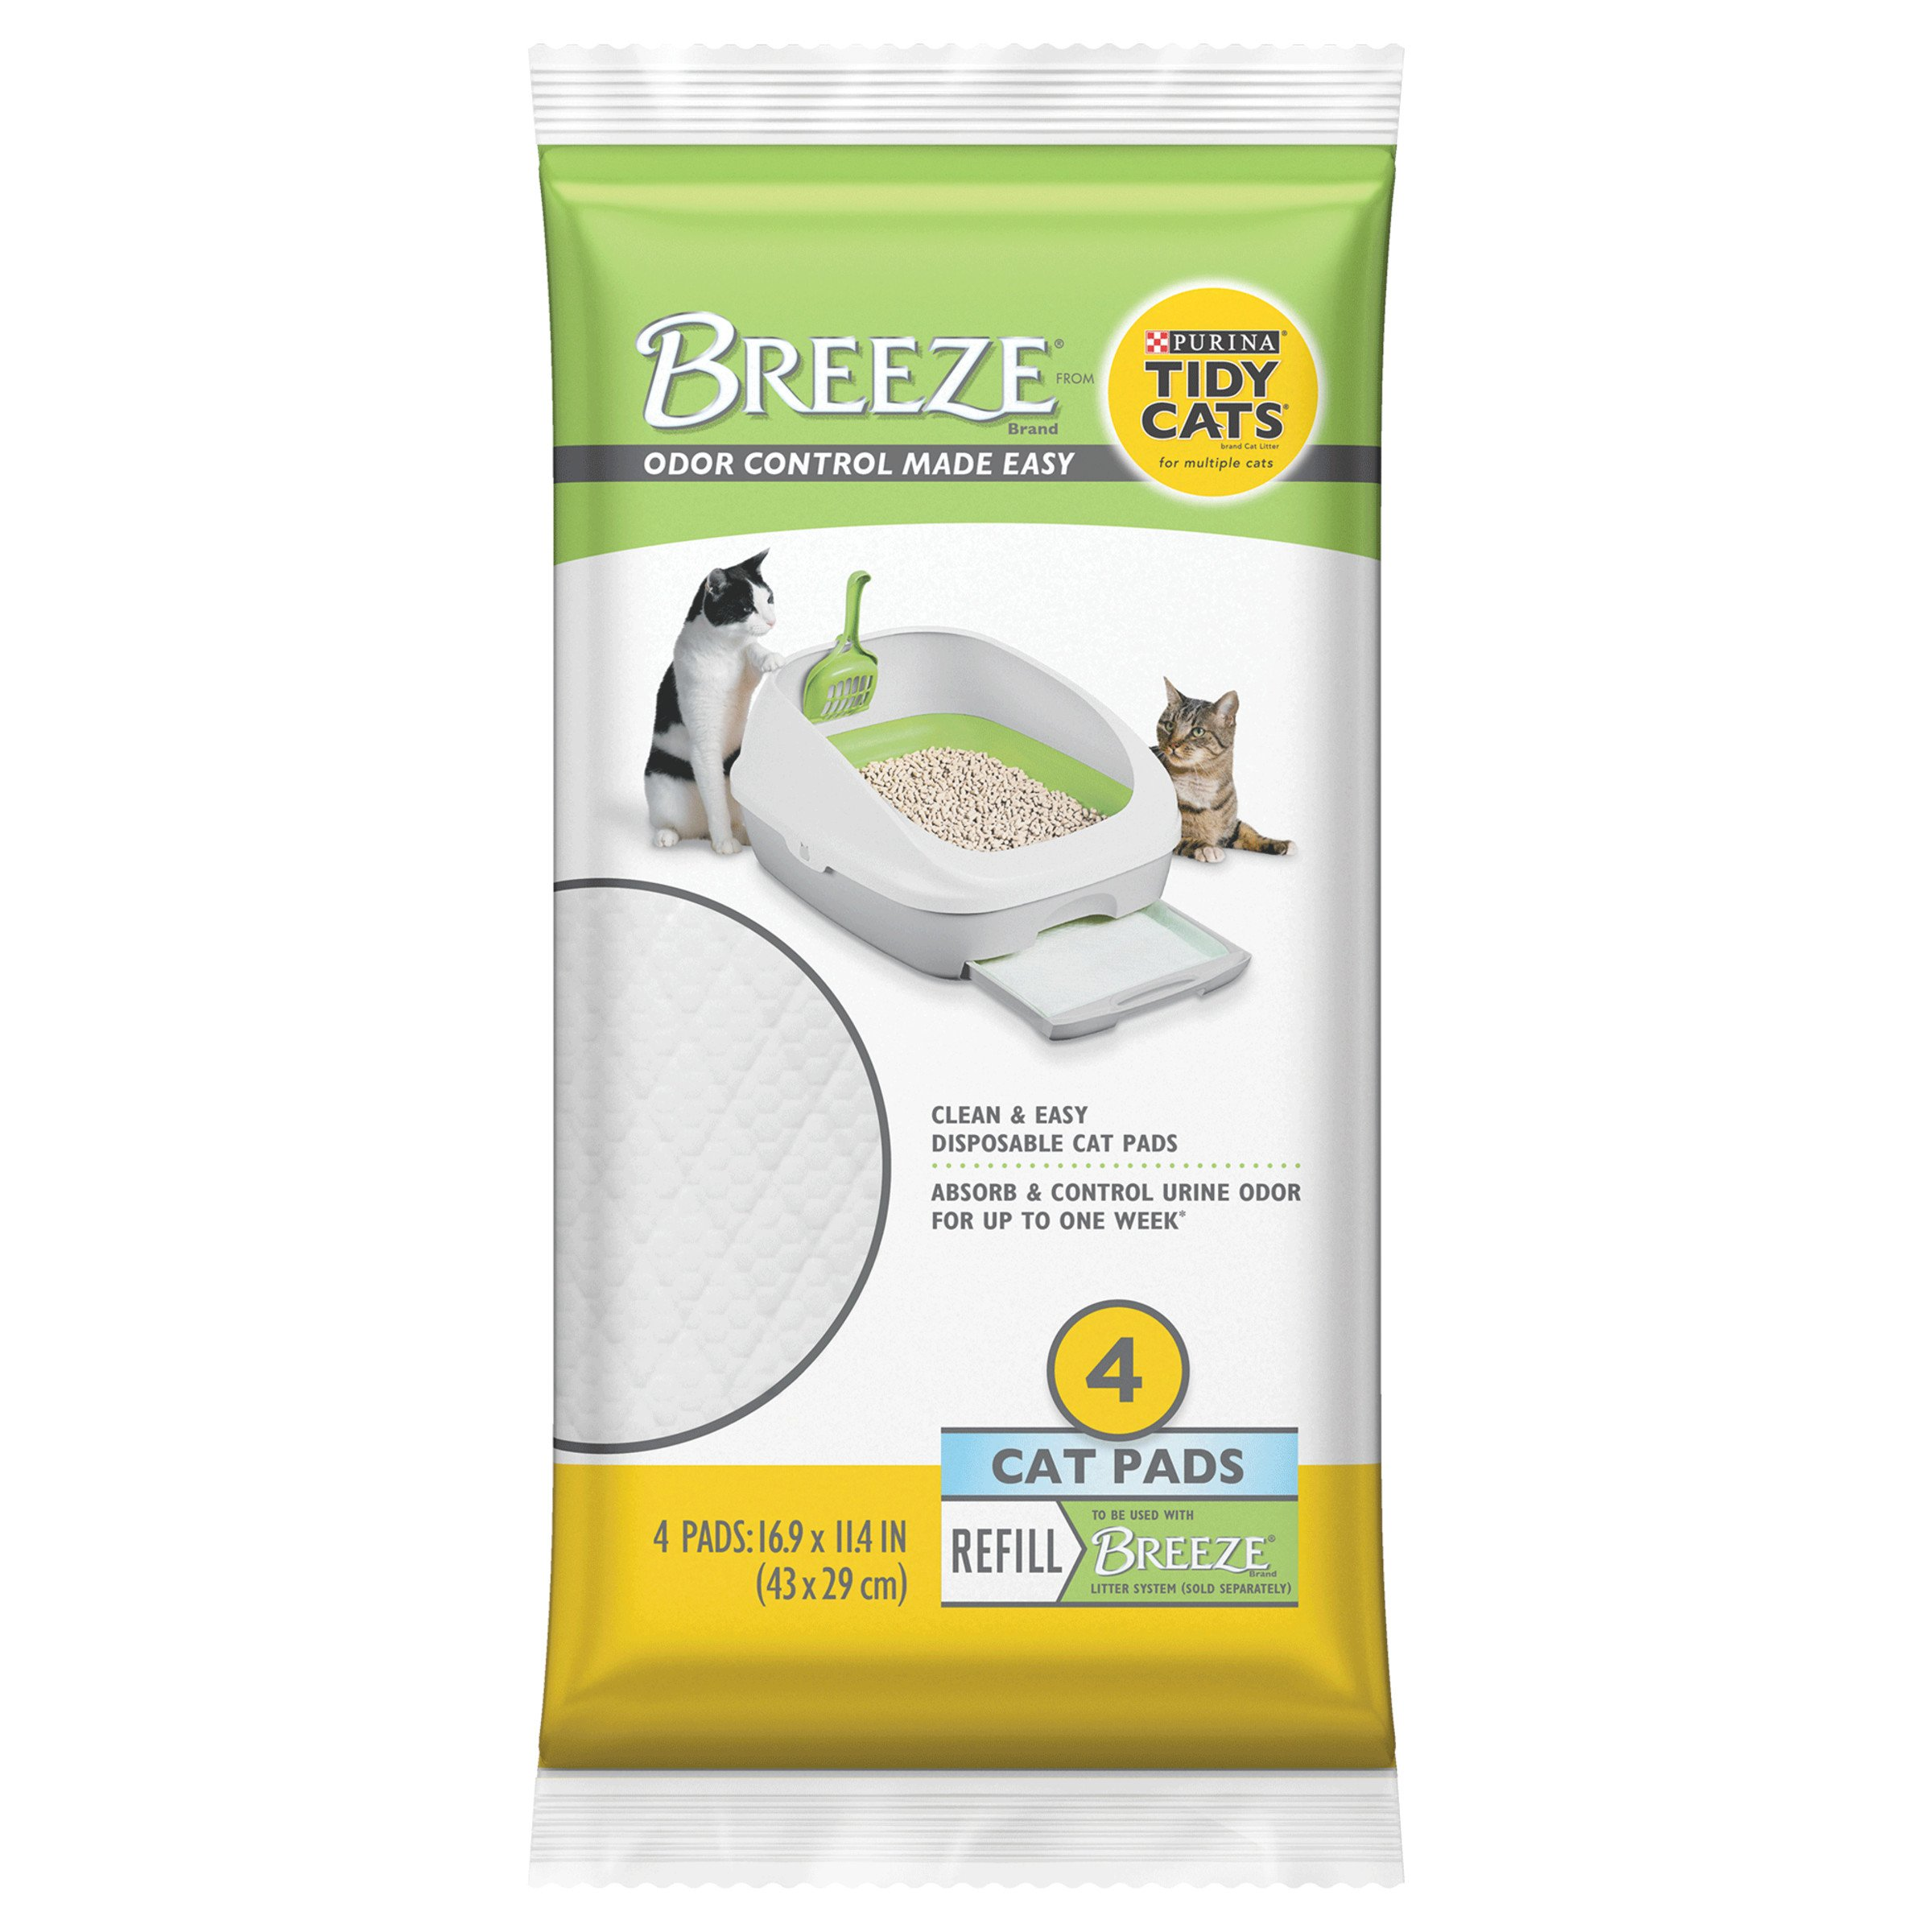 Purina Tidy Cats Breeze Litter System Unscented Cat Pad Refill, 4 Count Pouch, Pack of 10